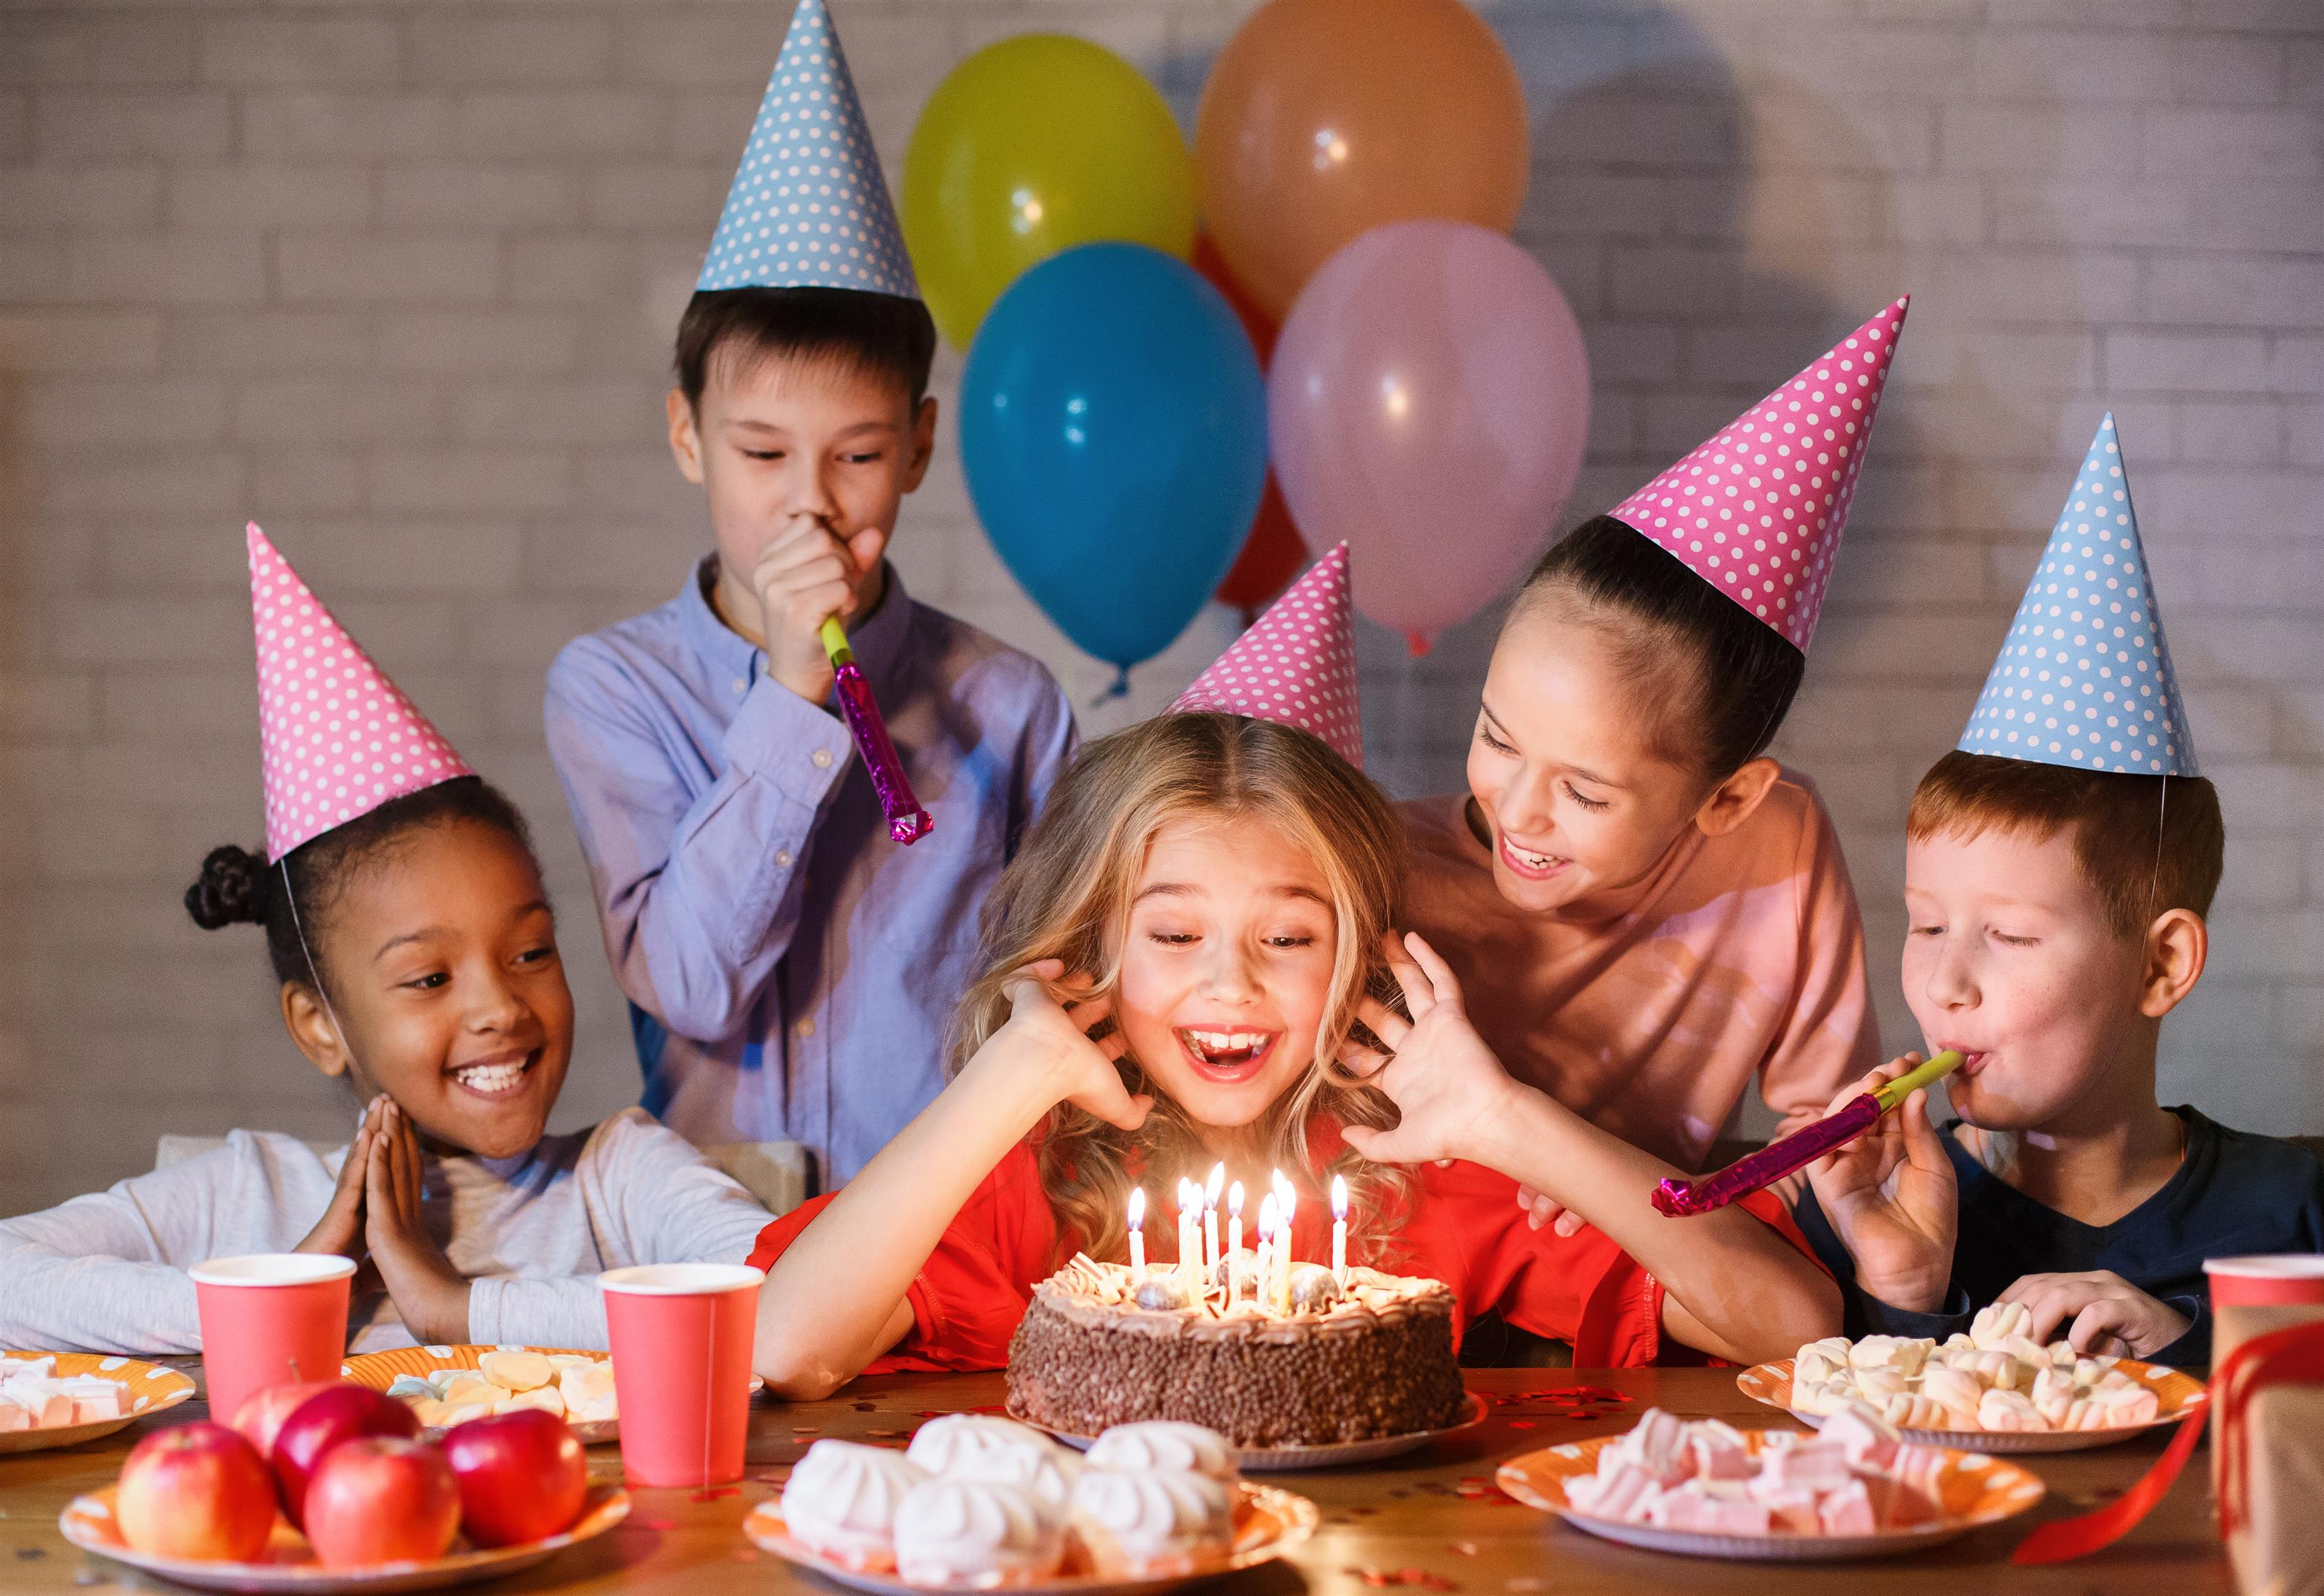 kids with with birthday cake and birthday hats